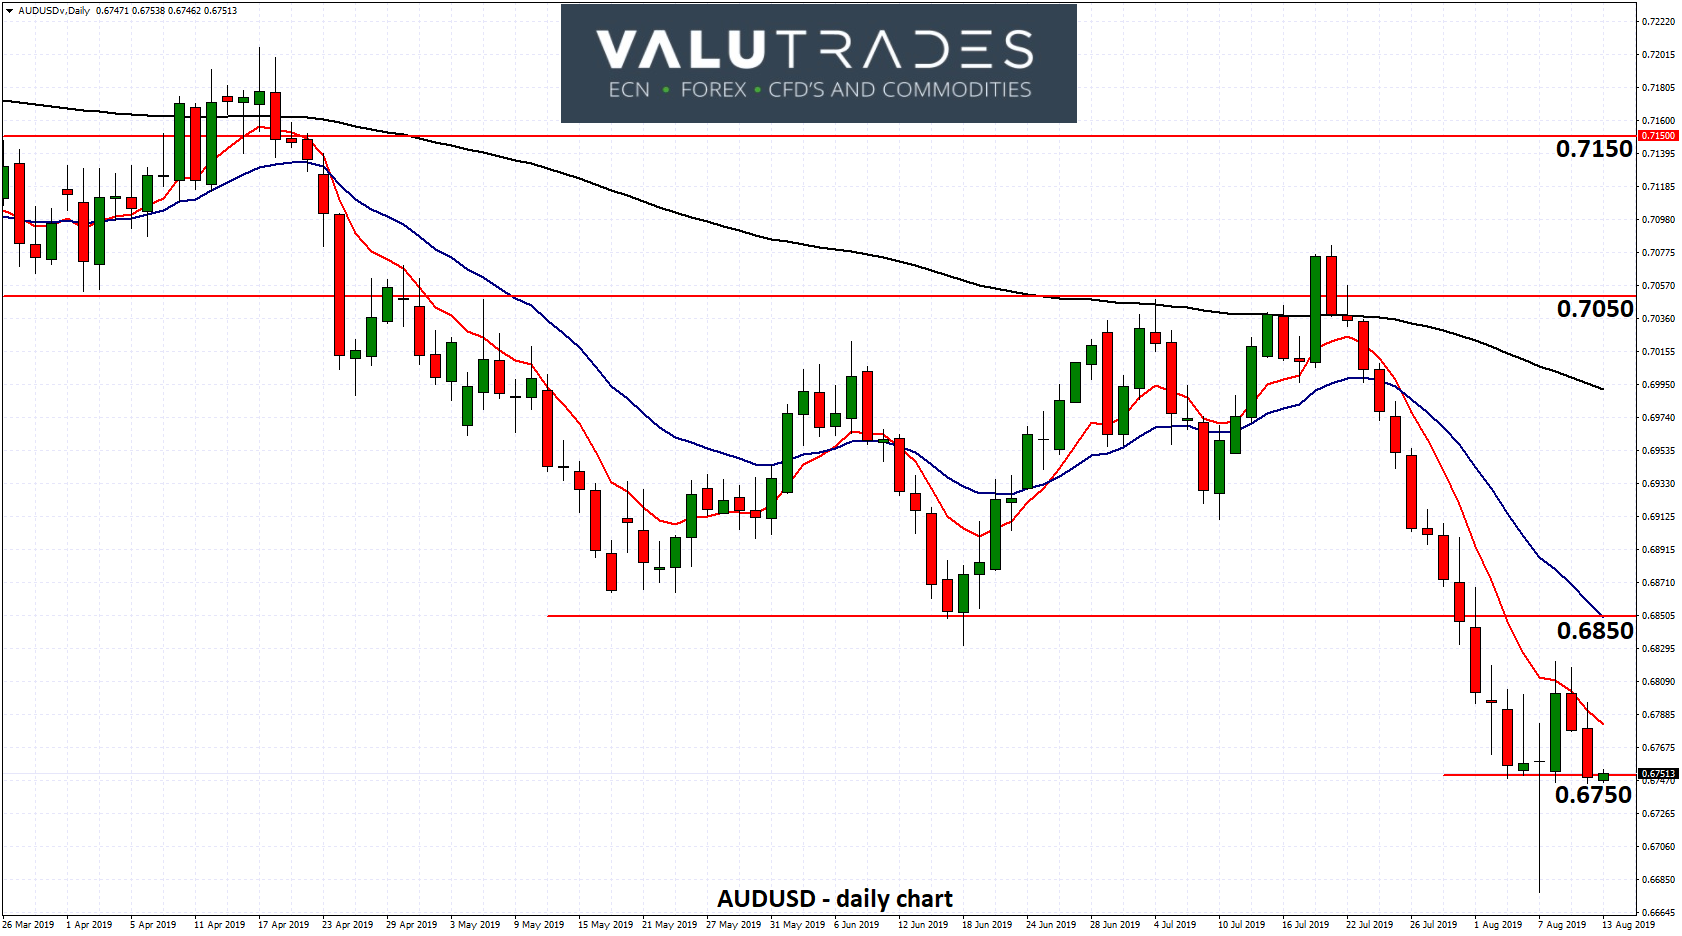 AUDUSD - Settles Around 0.6750 after RBA Pause on Rates